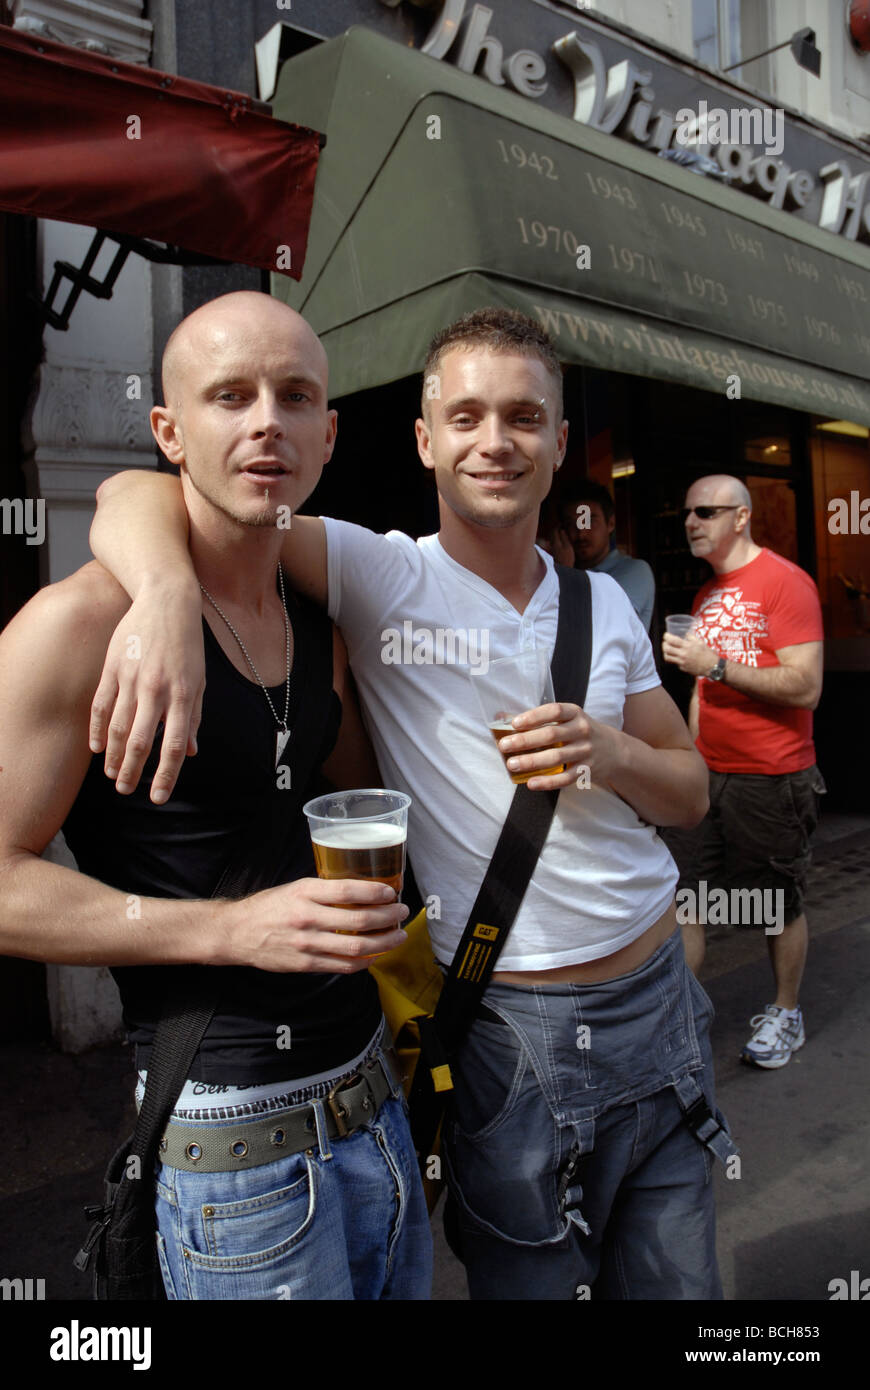 gay pubs in Soho London - Stock Image